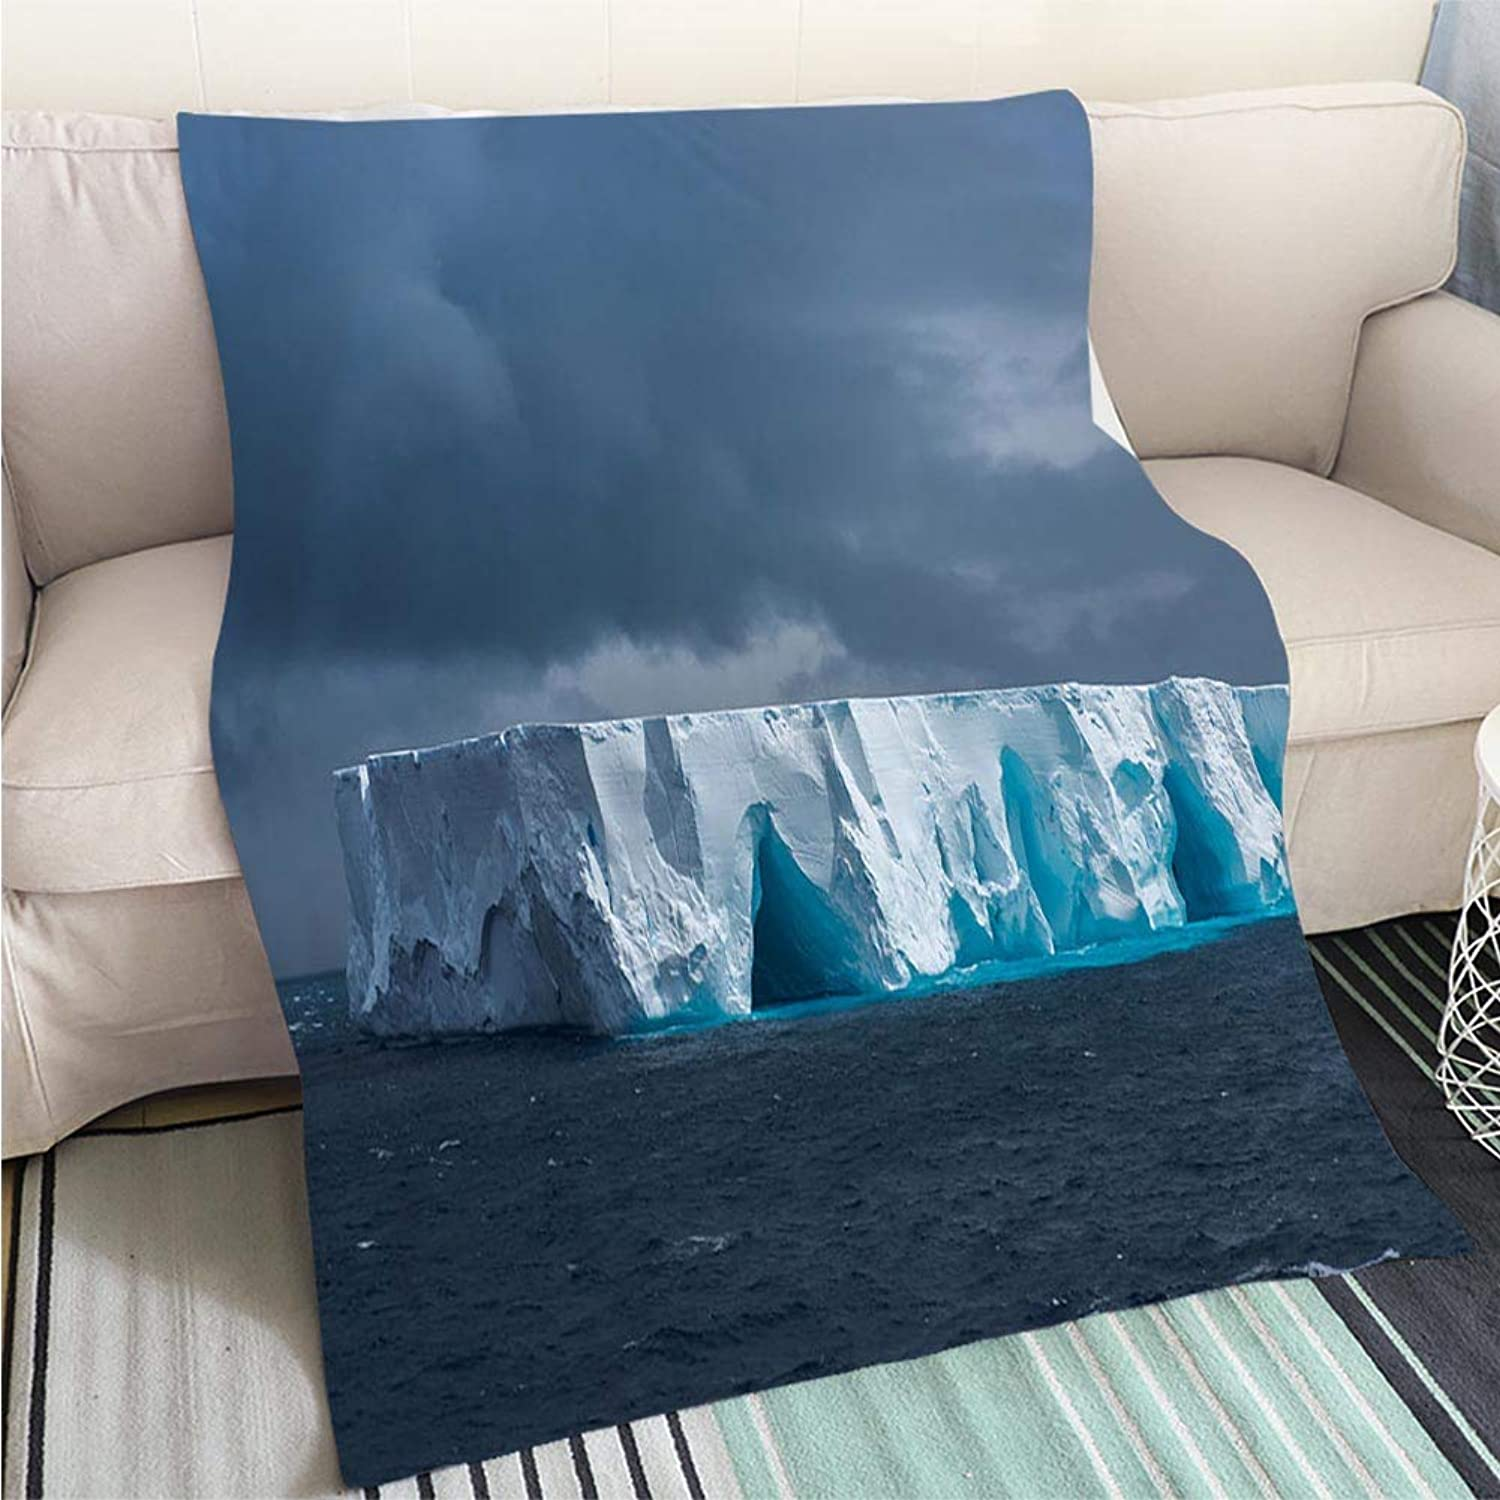 Luxury Super Soft Blanket Large tabular Iceberg Floating in Antarctica Perfect for Couch Sofa or Bed Cool Quilt